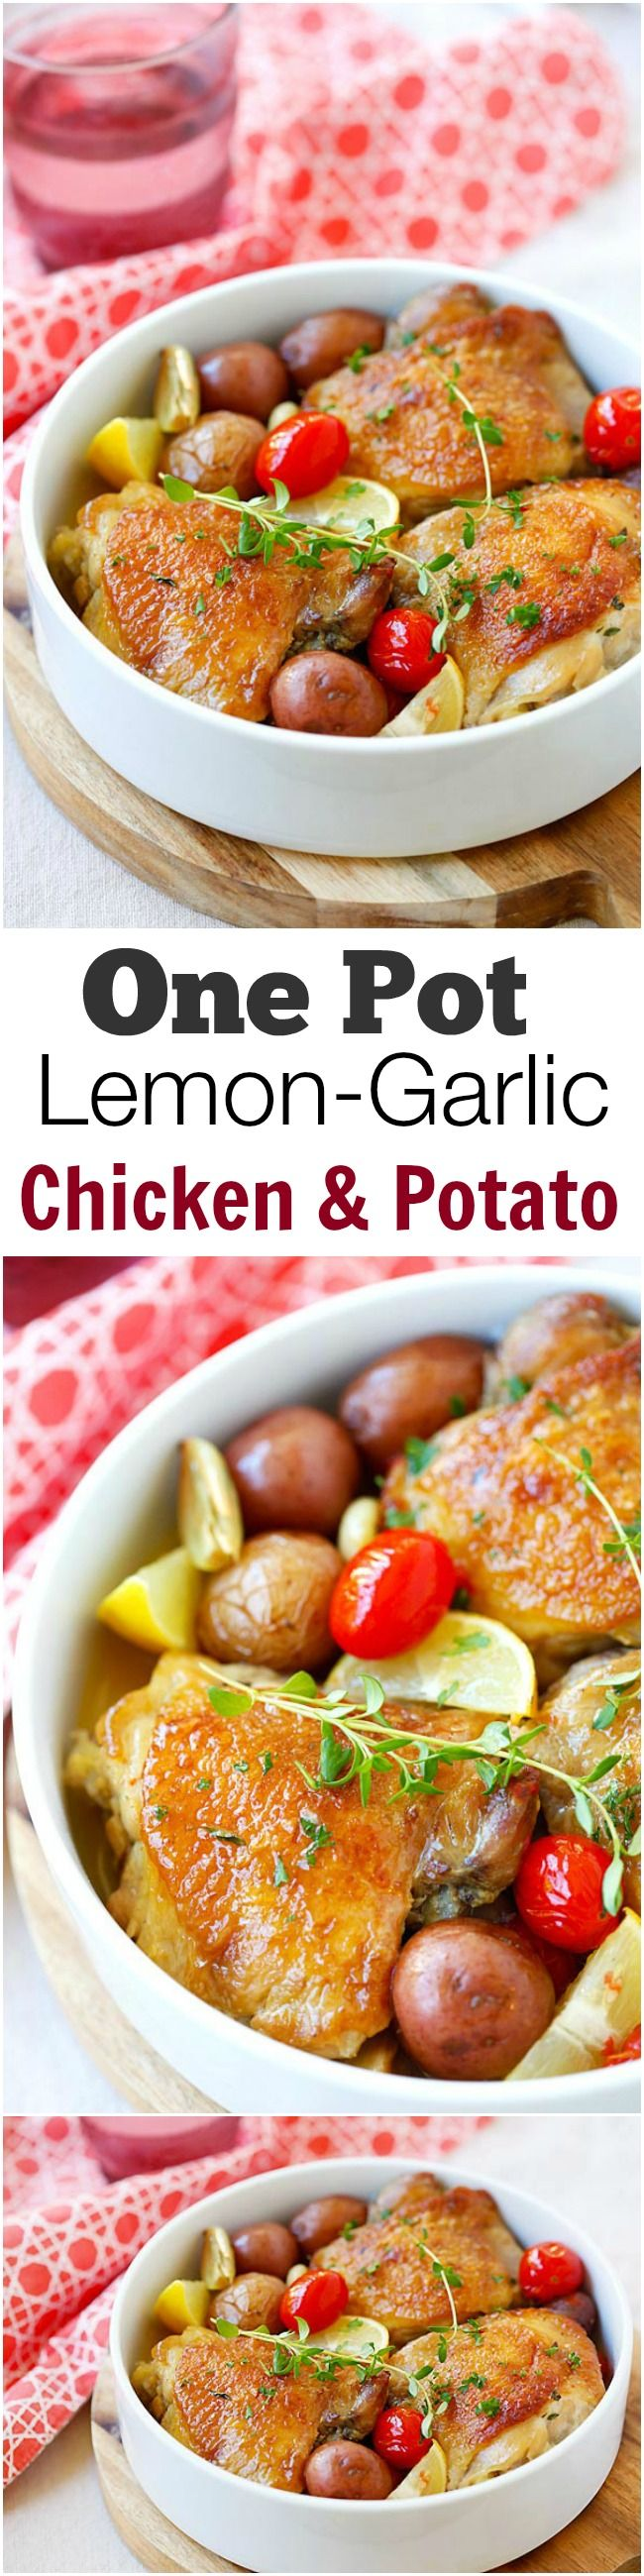 Lemon-Garlic Chicken and Potatoes – one pot braised chicken with lemon-garlic and potatoes. Serve the whole family but so easy and only one pot to clean!!   rasamalaysia.com